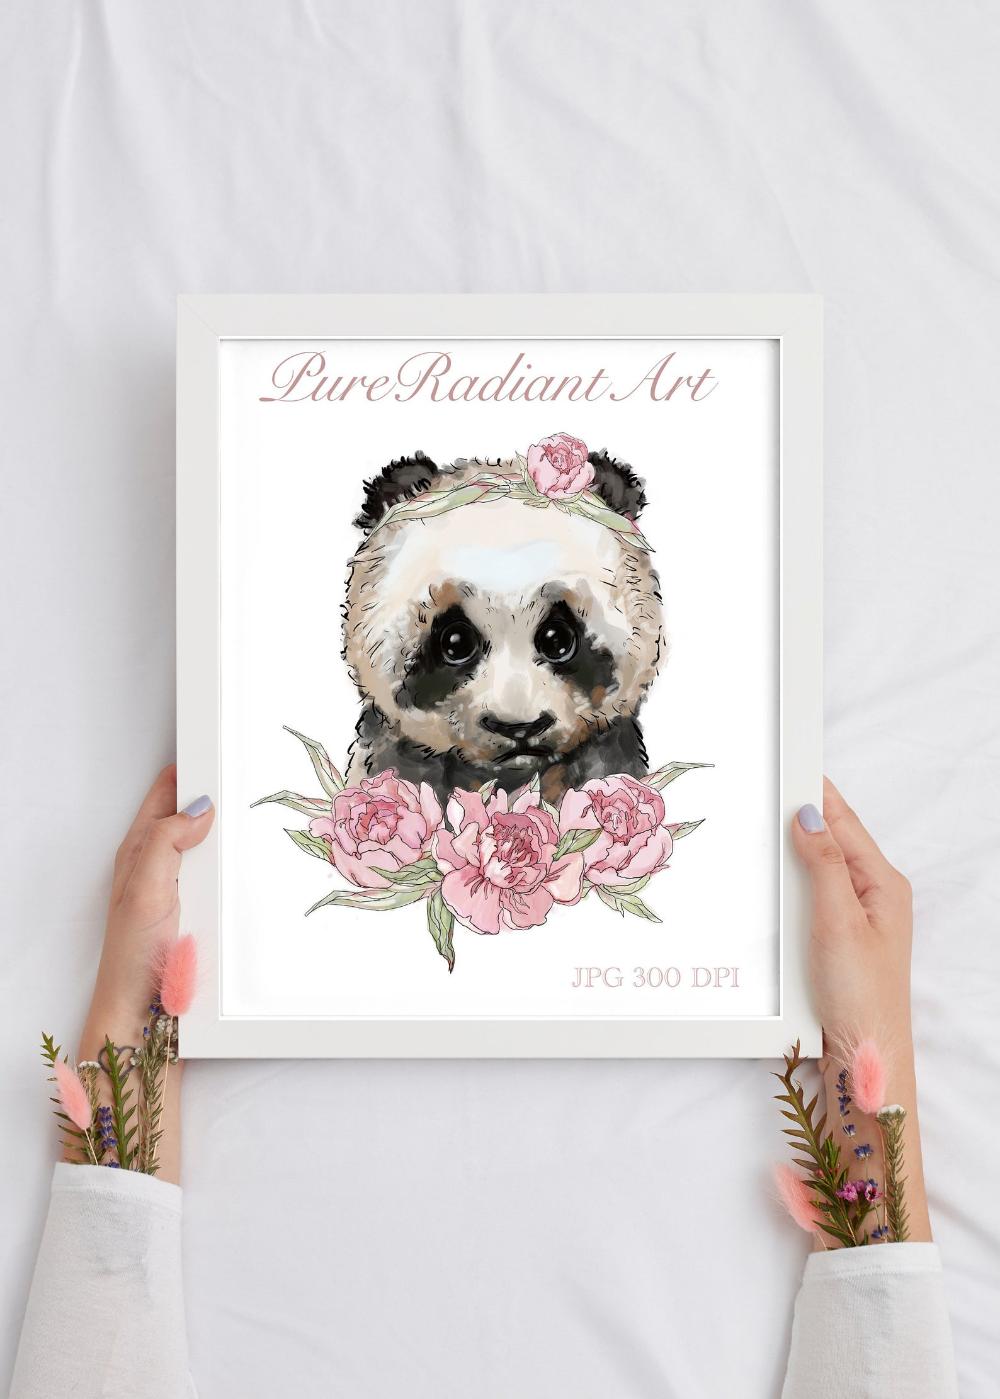 Baby Panda Print, Panda Bear Flower Crown, Nursery Wall Art, Woodland Animal Prints, Baby Animals, Girls Room Decor, Floral Printable Art